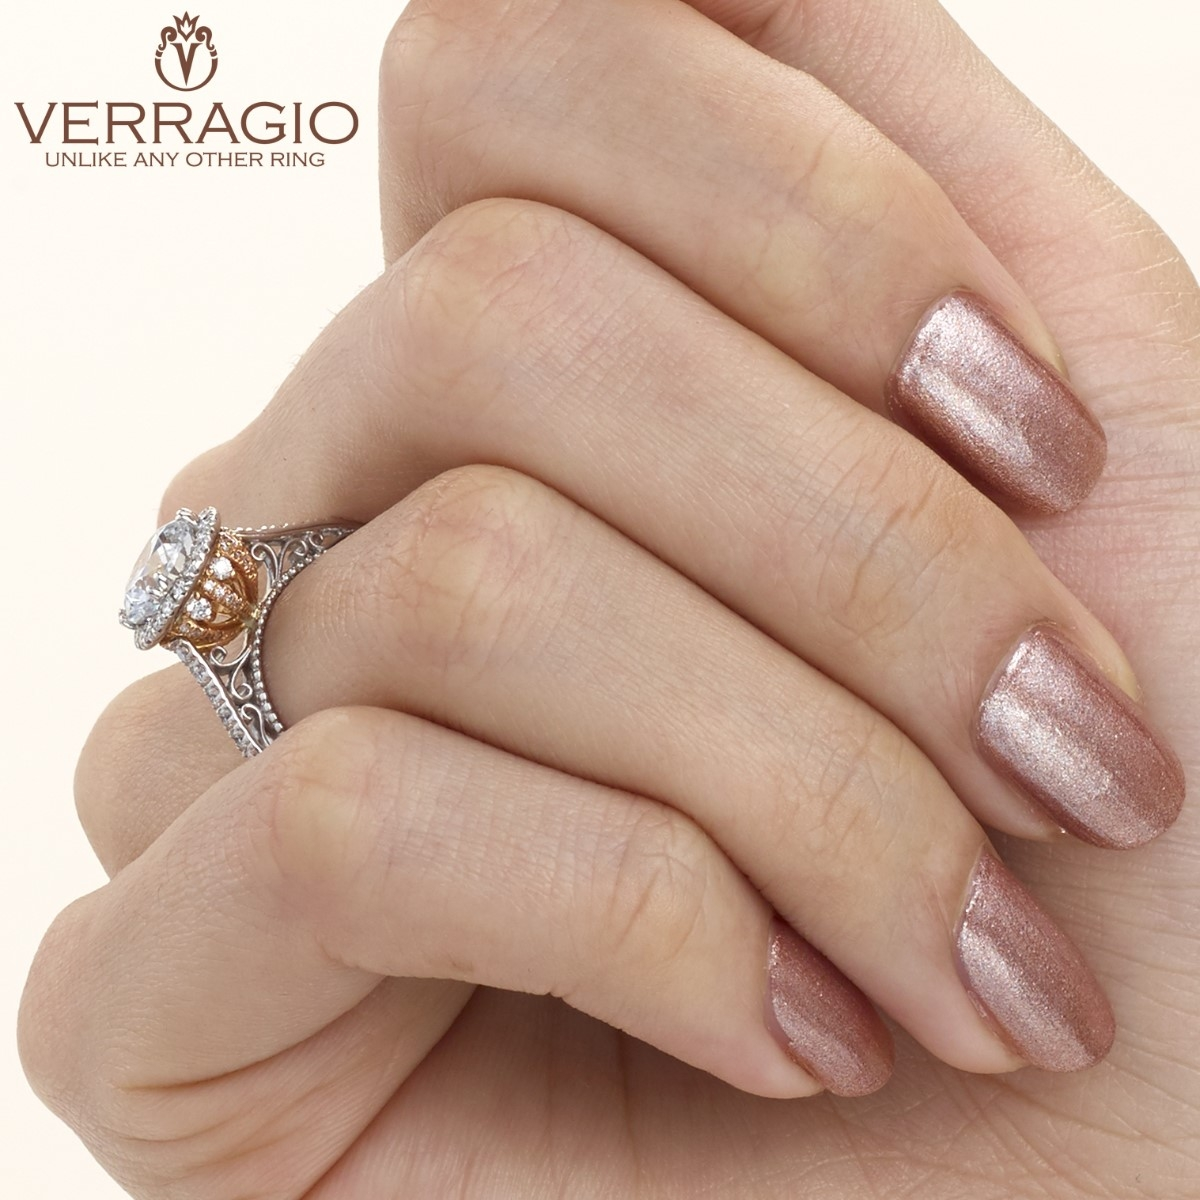 Verragio Venetian-5060R-TT Platinum Engagement Ring Alternative View 4